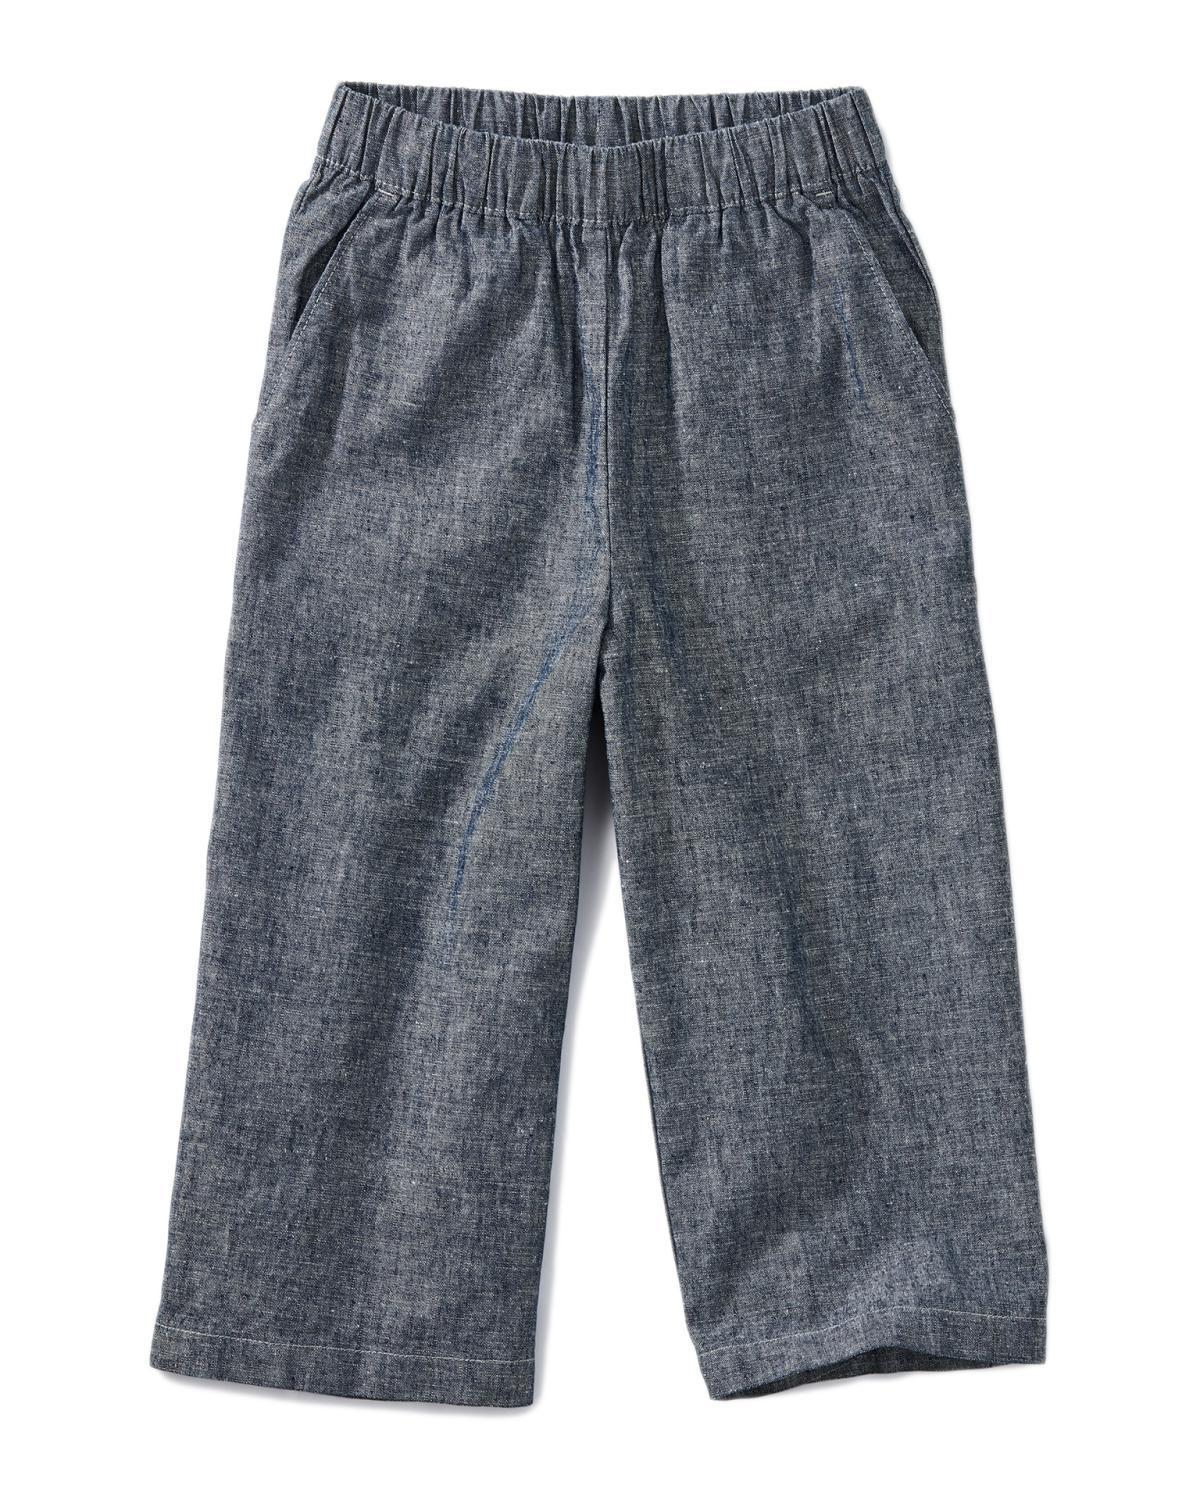 Little tea collection girl 10 chambray wide leg pant